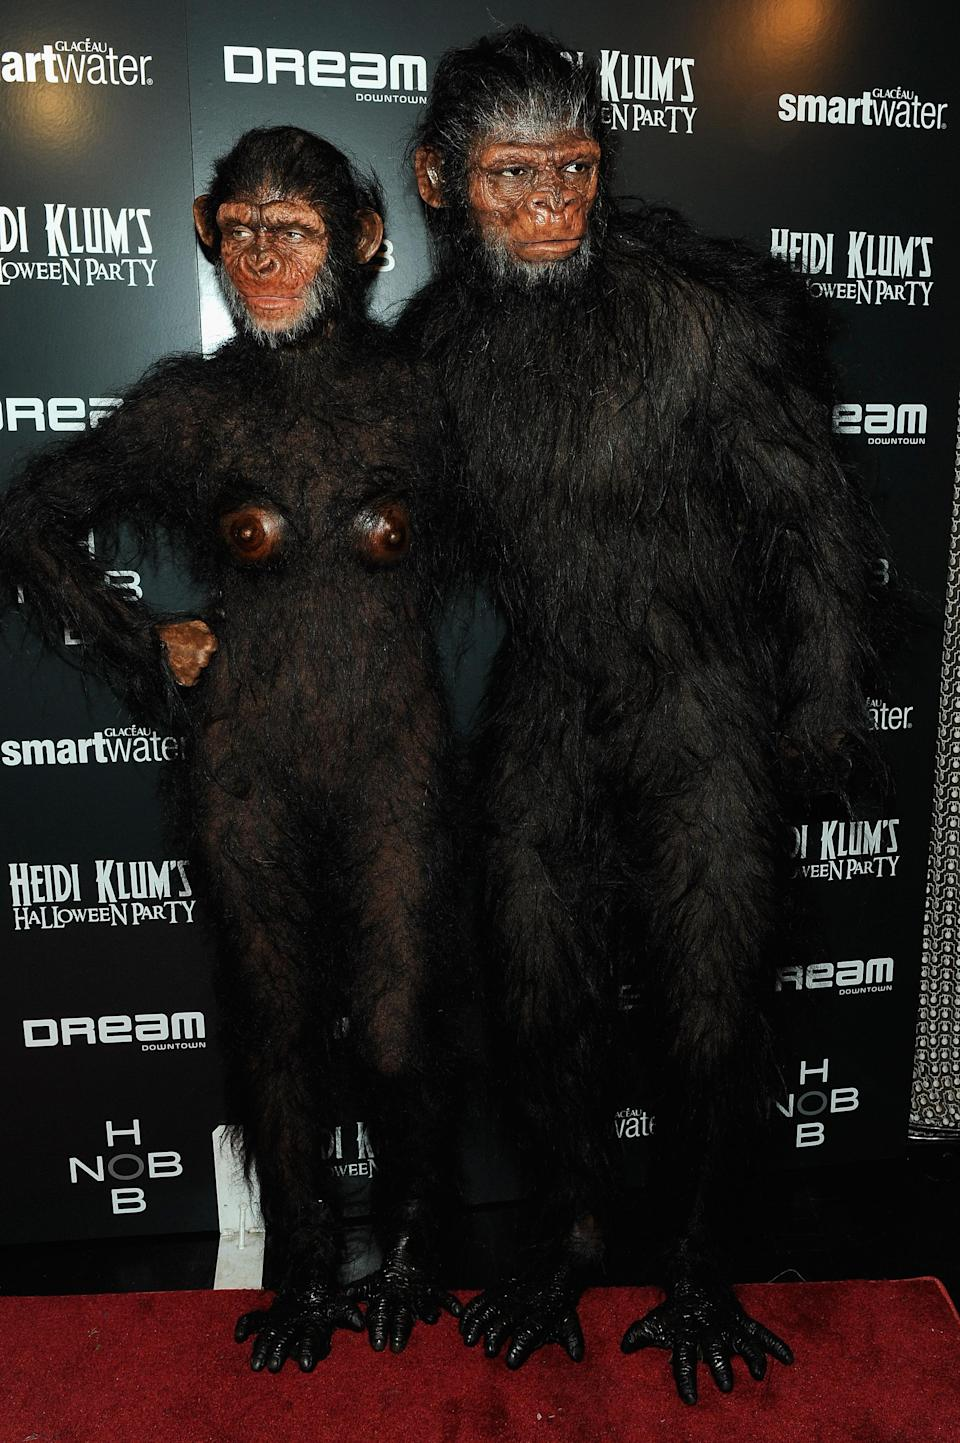 For her second 2011 Halloween outfit, Klum and her then-husband Seal dressed as a simian couple.<em> [Photo: Getty]</em>